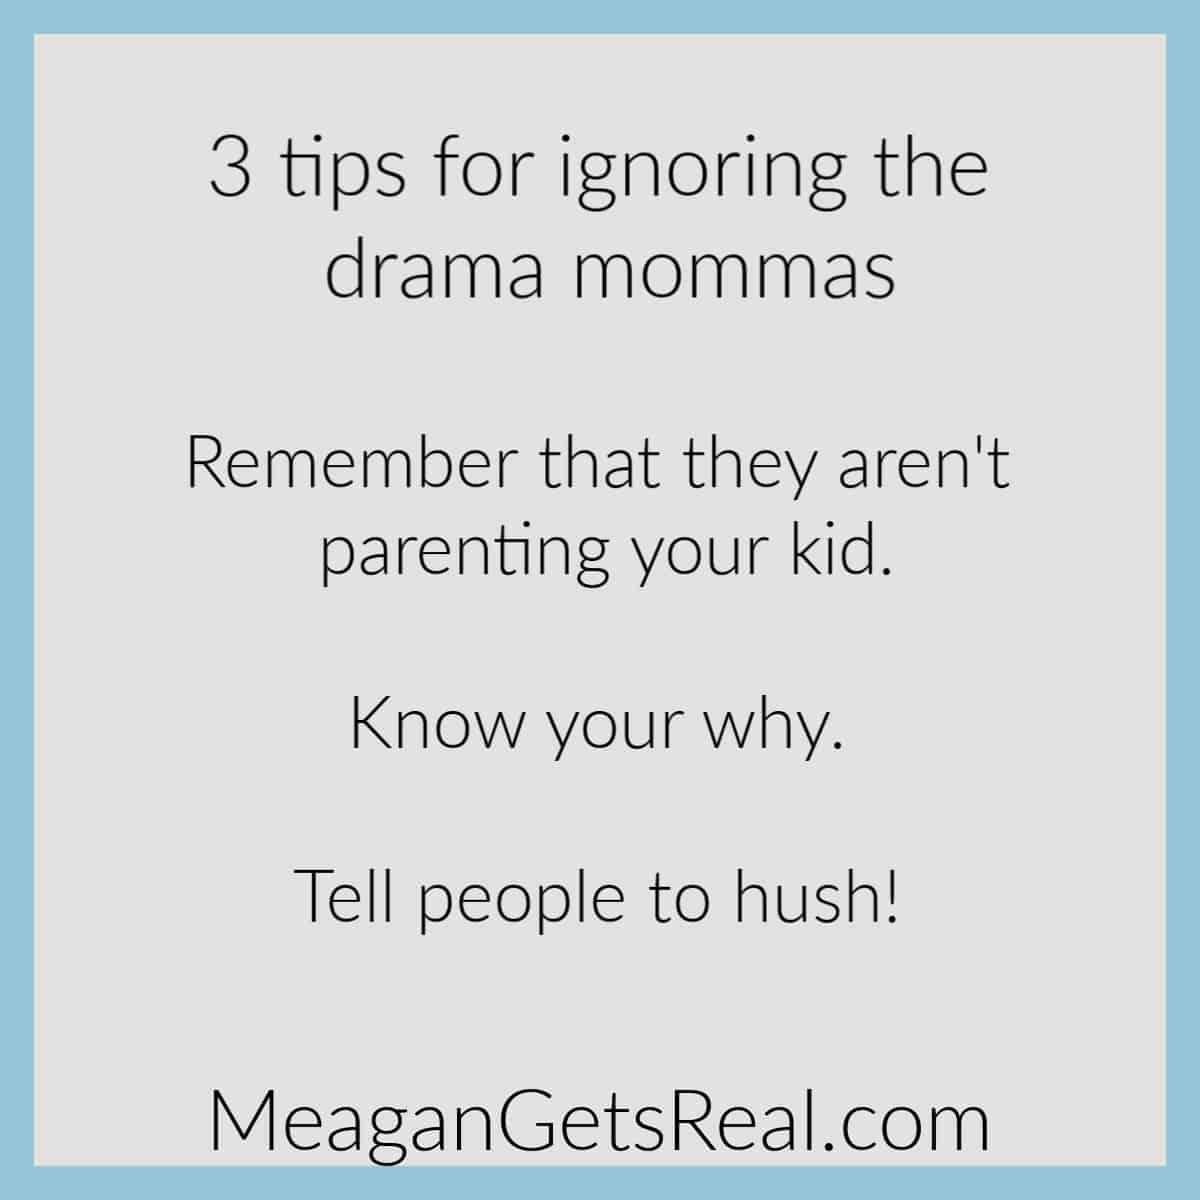 3 Tips for ignoring the drama mommas. Support for moms doesn't have to be hard to find with this comprehensive guide filled with parenting resources for moms you won't want to miss.